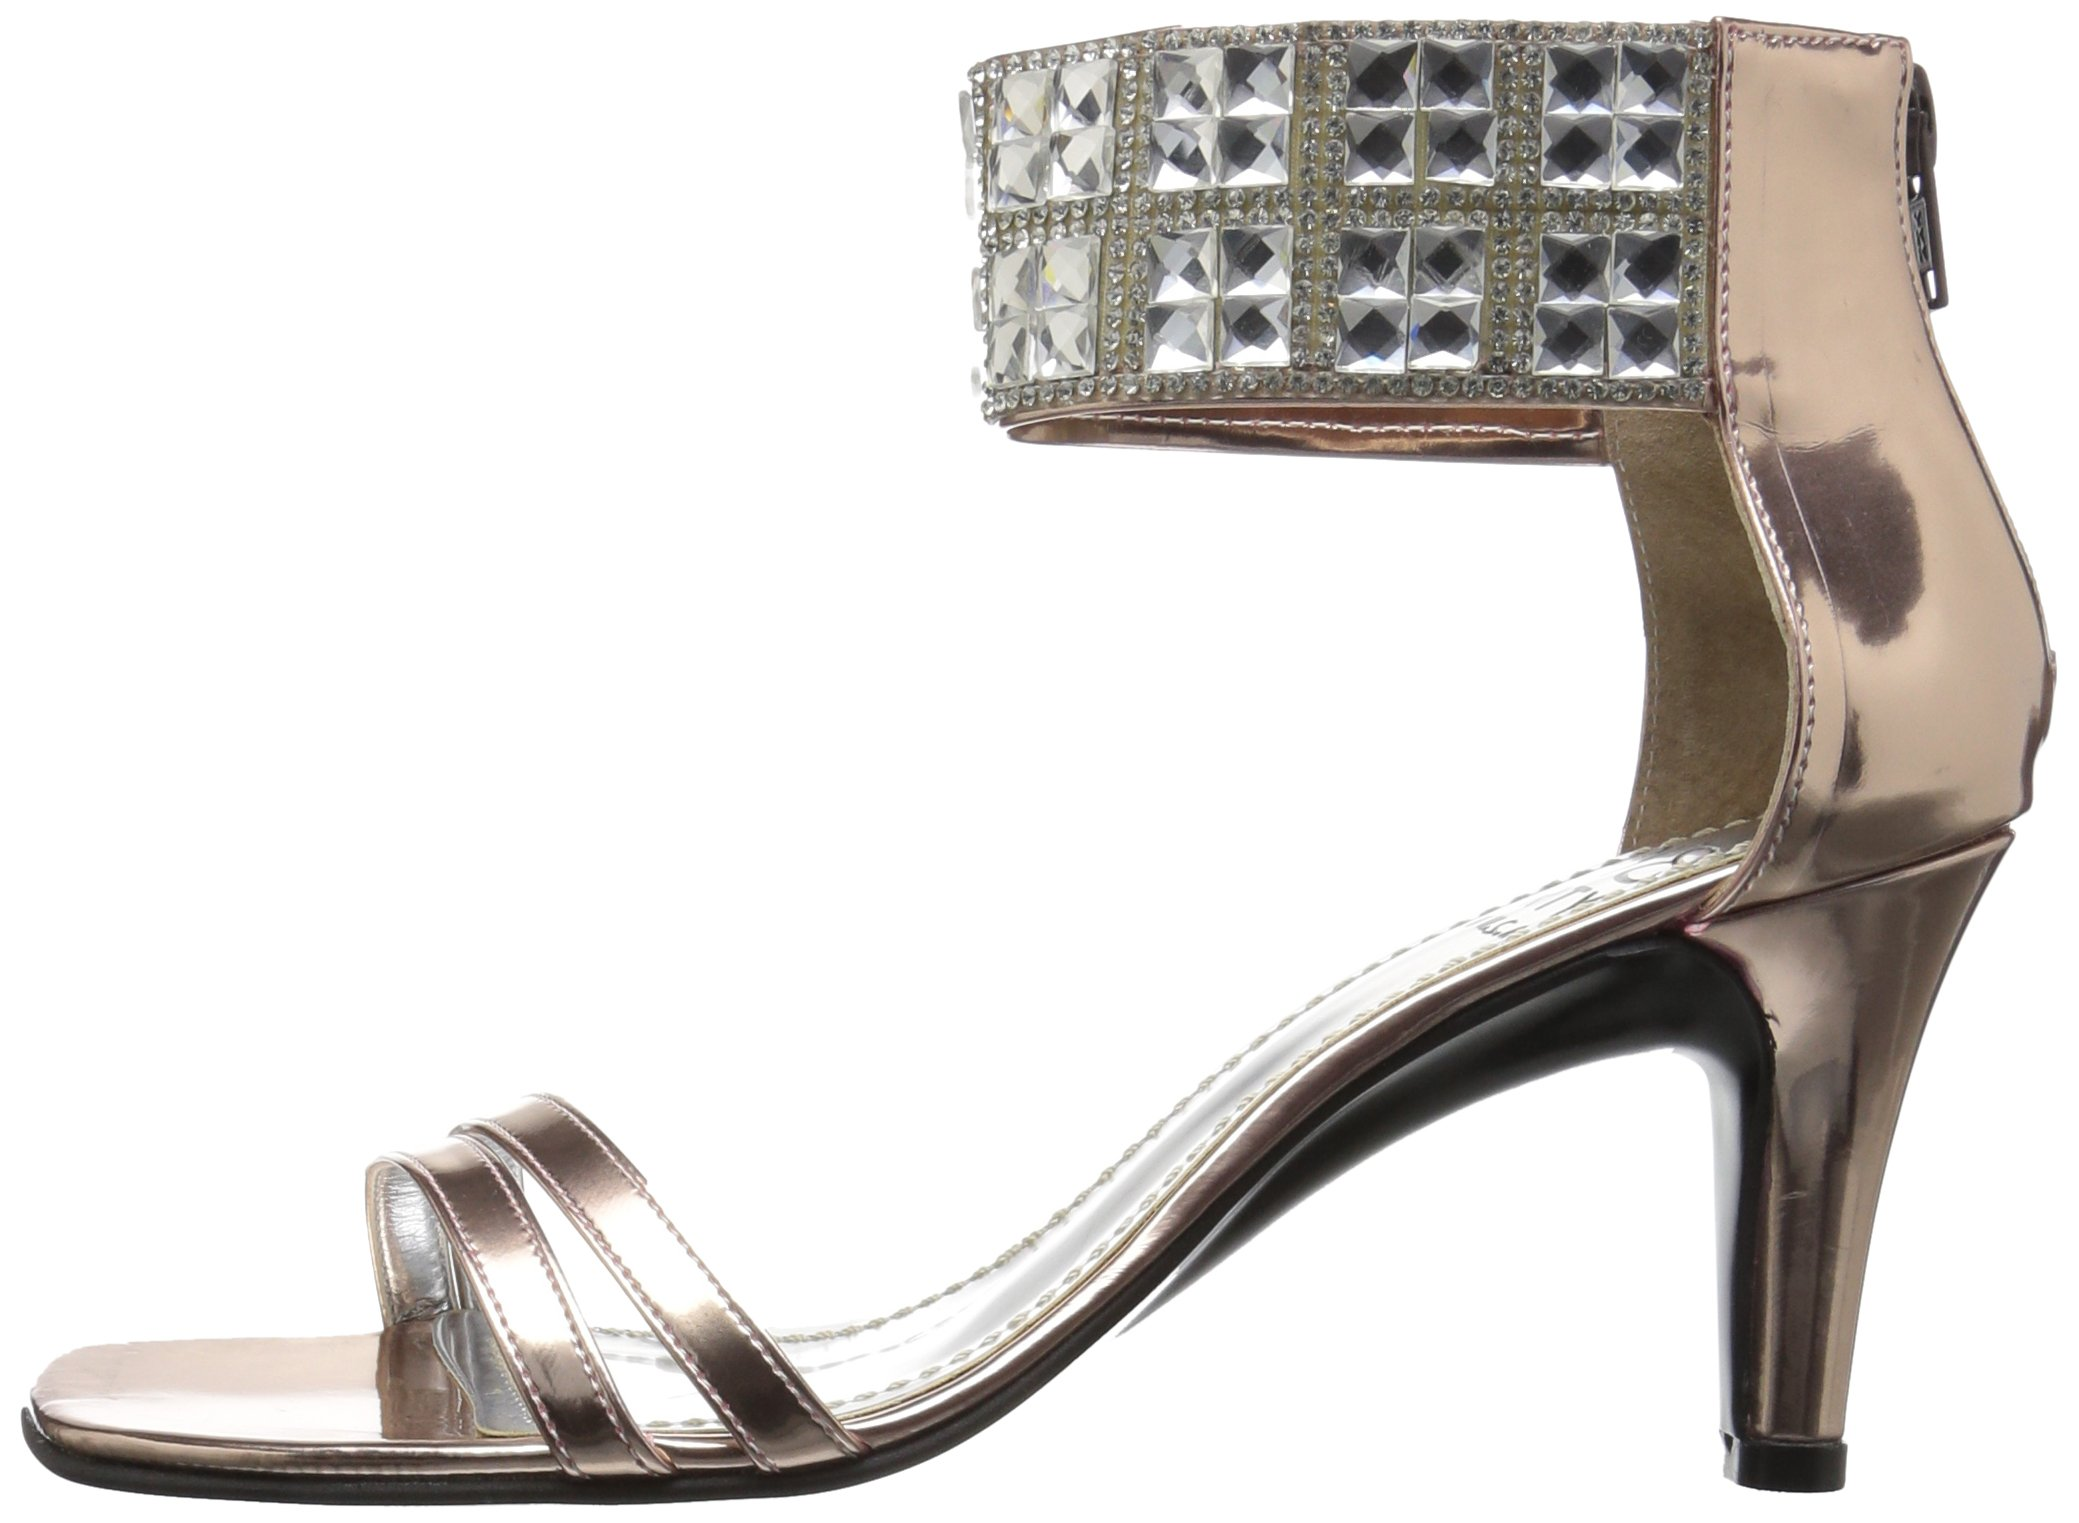 Love & Liberty Women's Scarlett-Ll Dress Sandal, Rose Gold, 9 M US by Love & Liberty (Image #5)